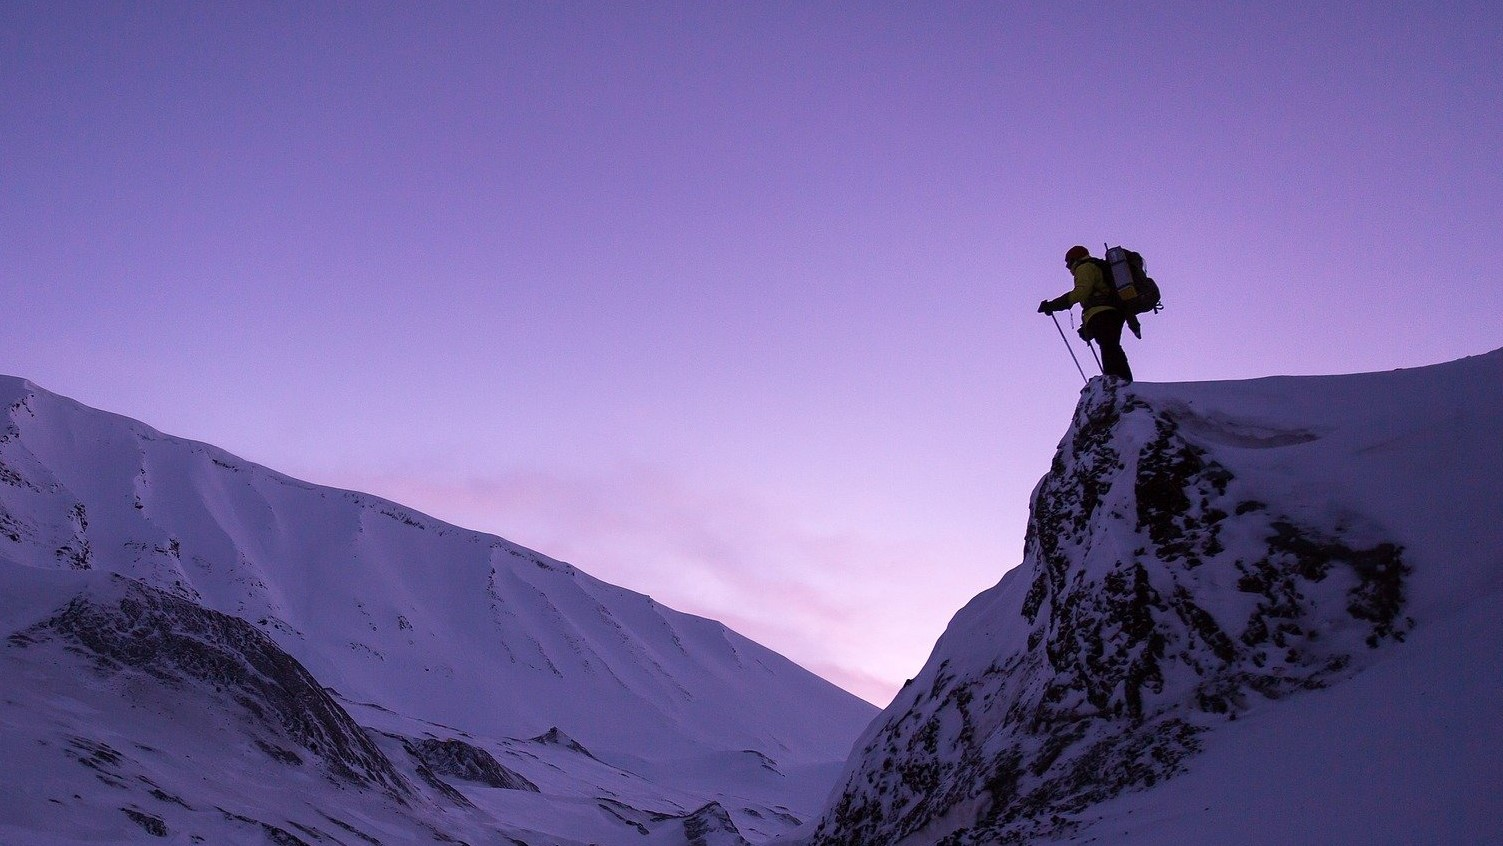 Image: Person with large backpack on standing atop of a snow covered cliff, staring off into the distance.